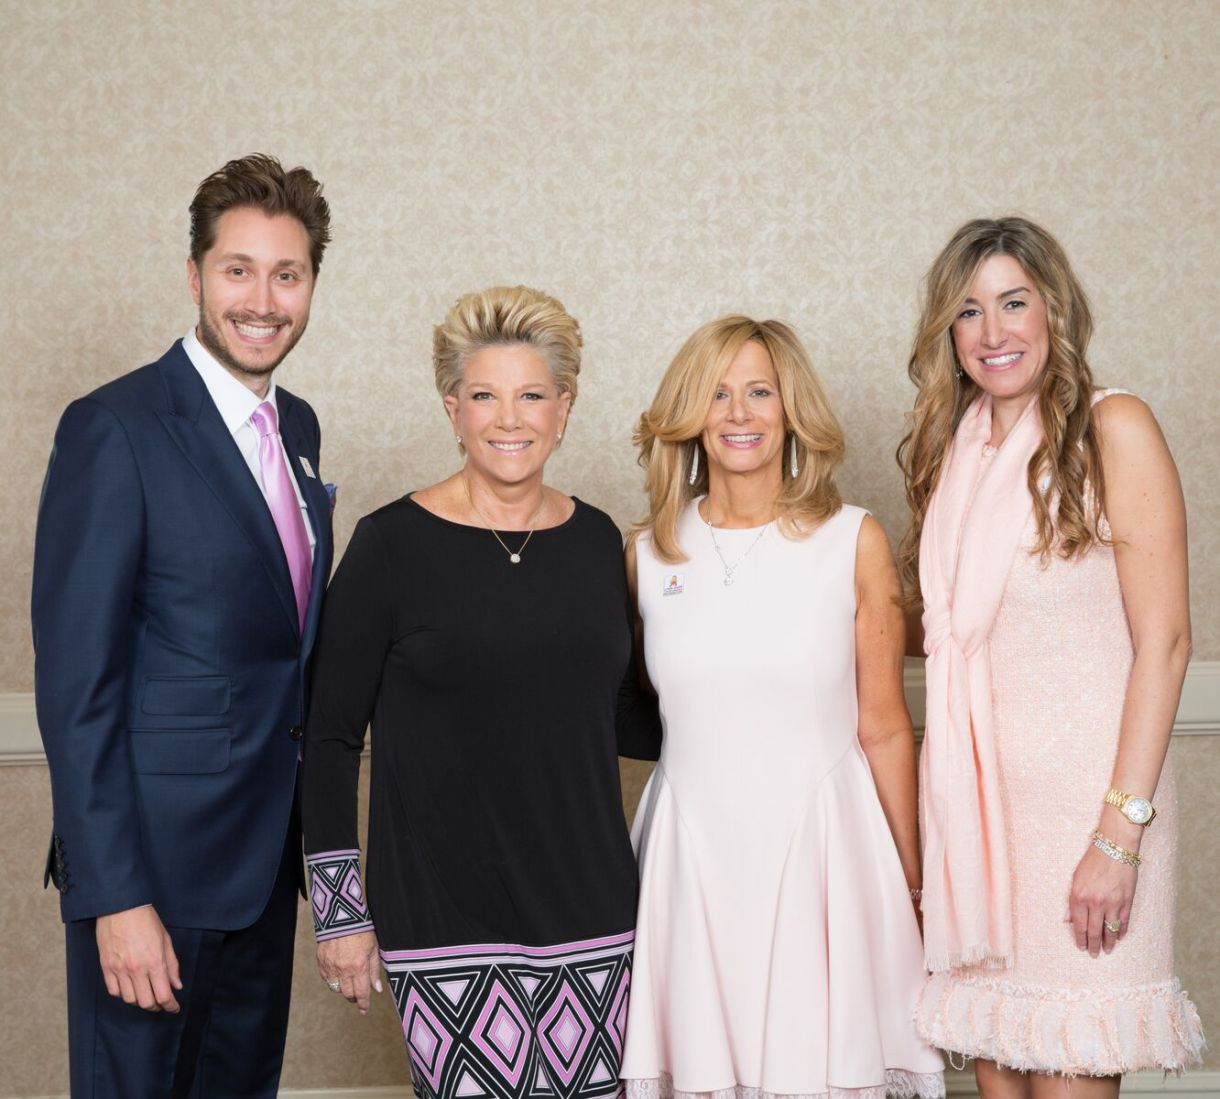 From left to right: Brad Jarol, Joan Lunden, Loren Palmer, and Julie Lampert at the Fall Benefit Luncheon on October 25, 2016. (Photo courtesy of Sheri Whitko Photography)